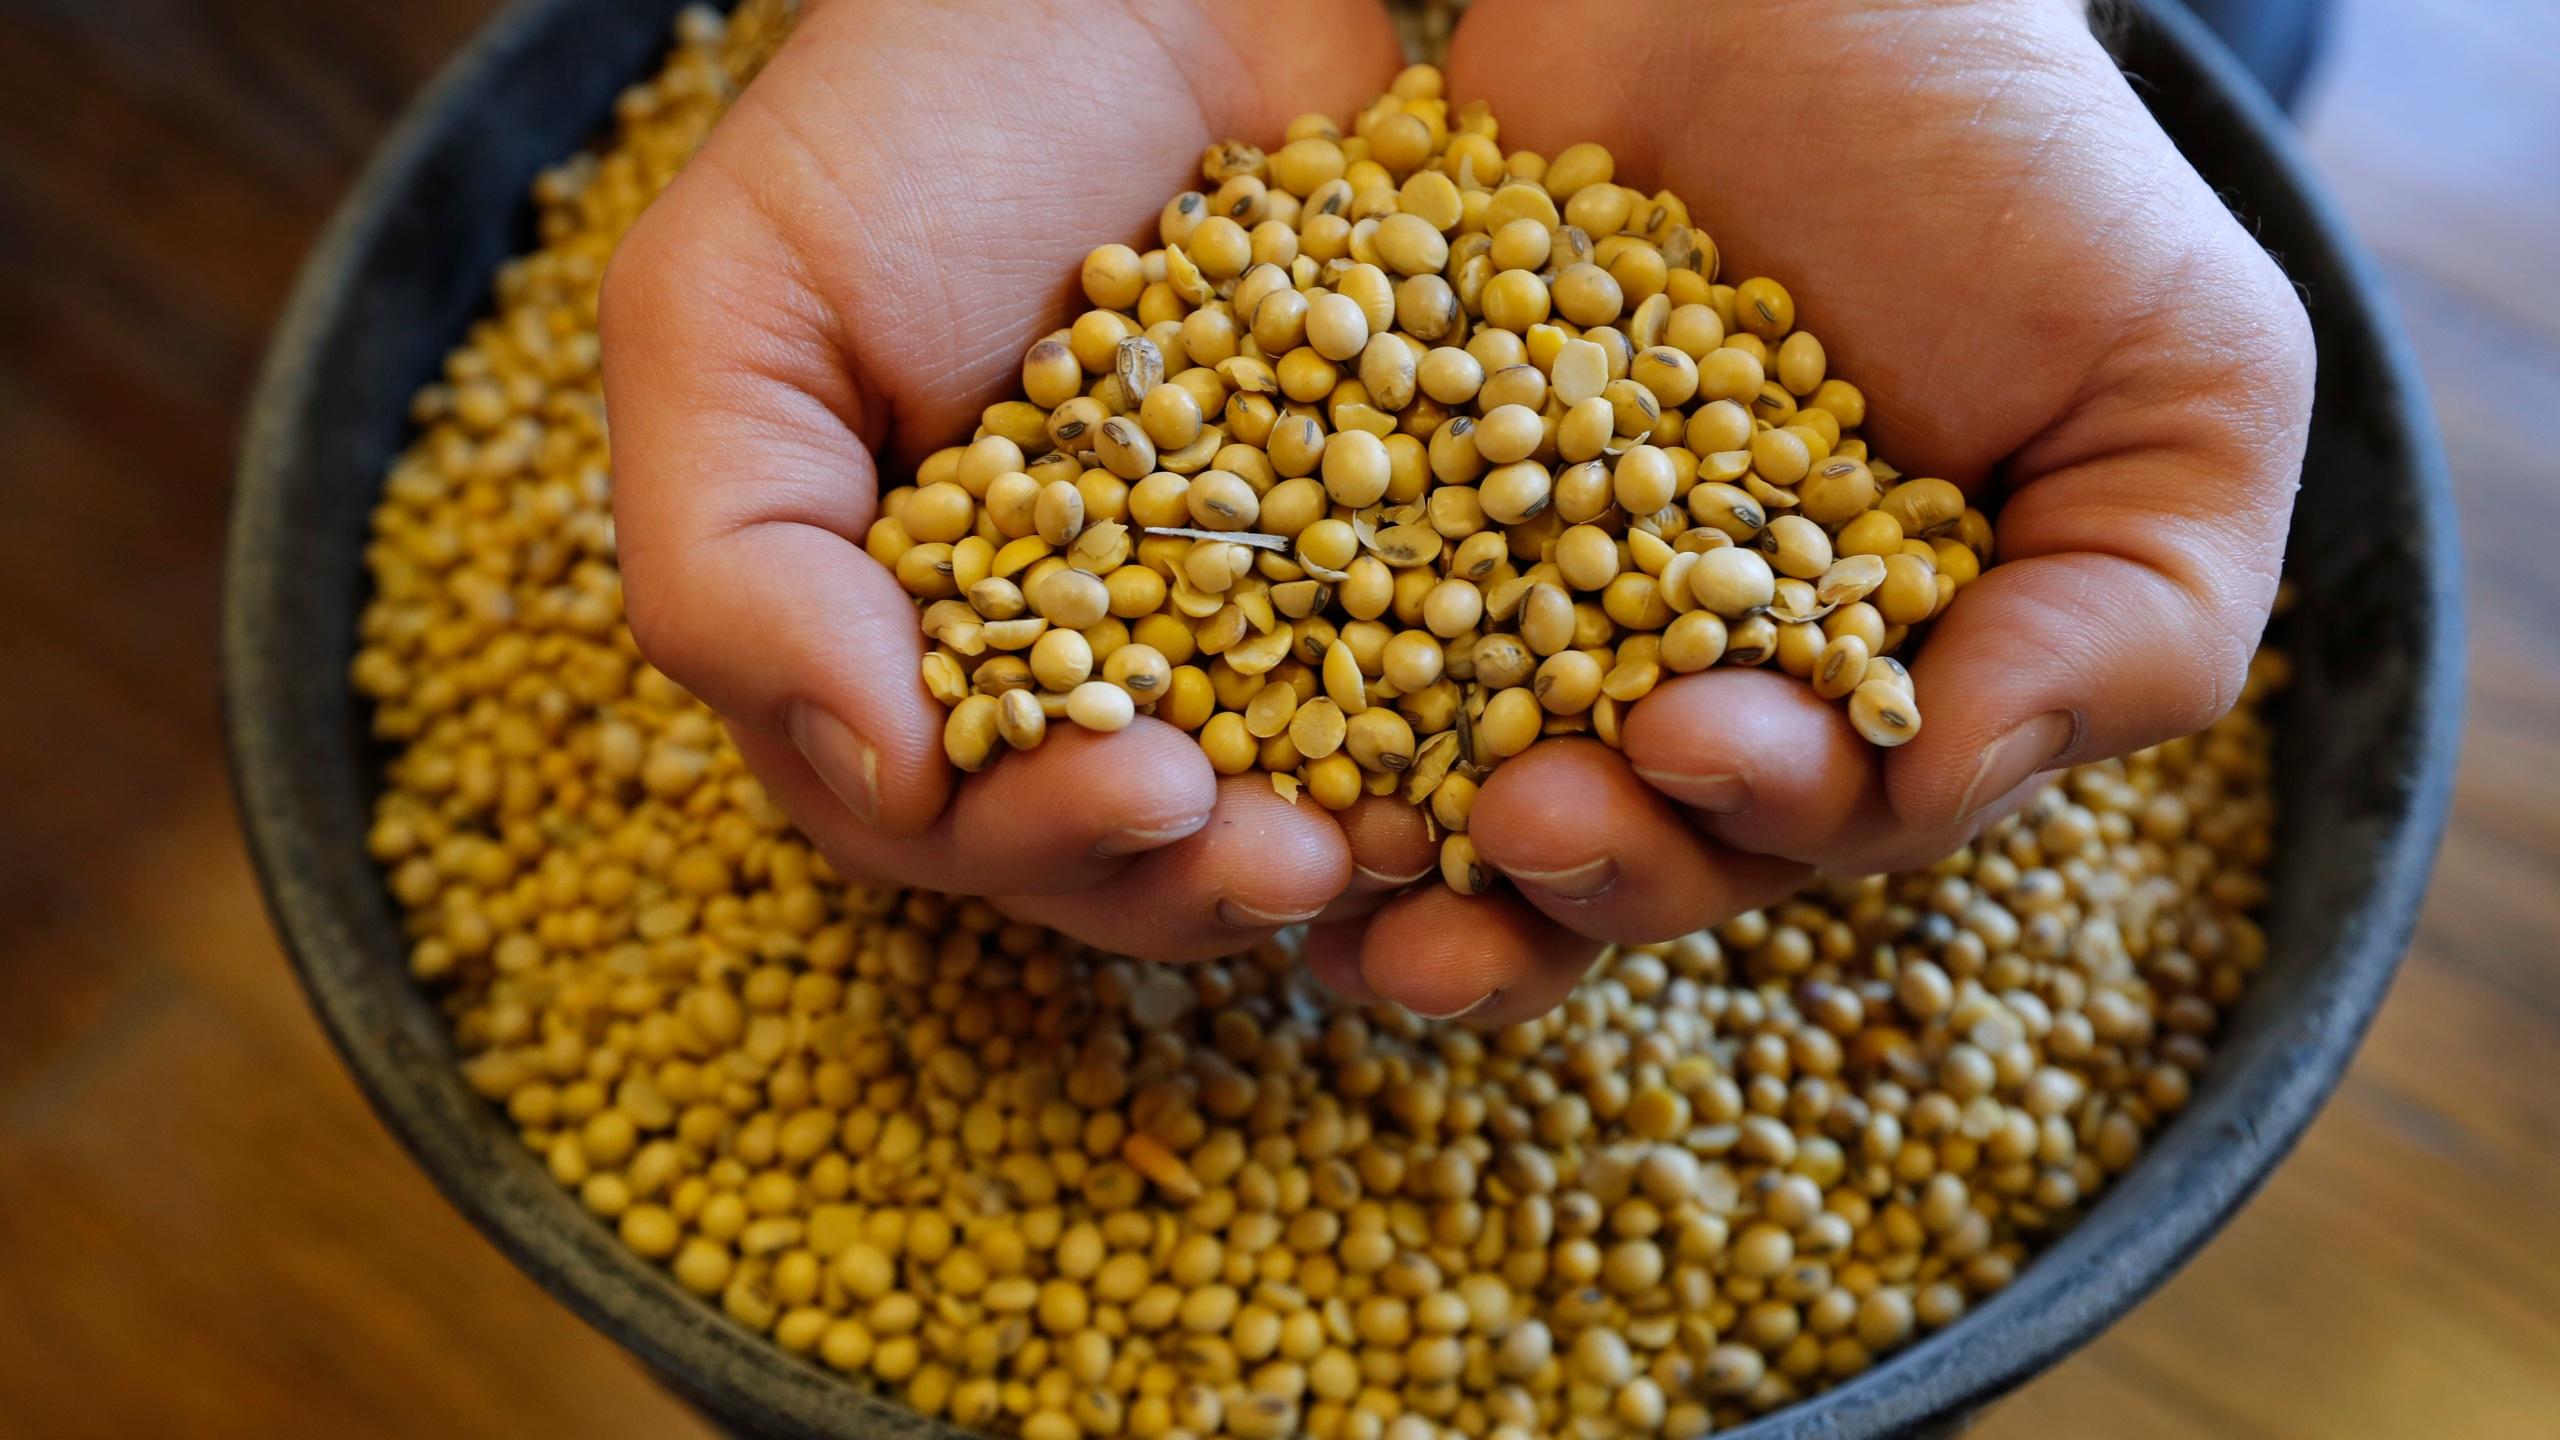 Soybean_Surplus_Tariffs_25780-159532.jpg68835793